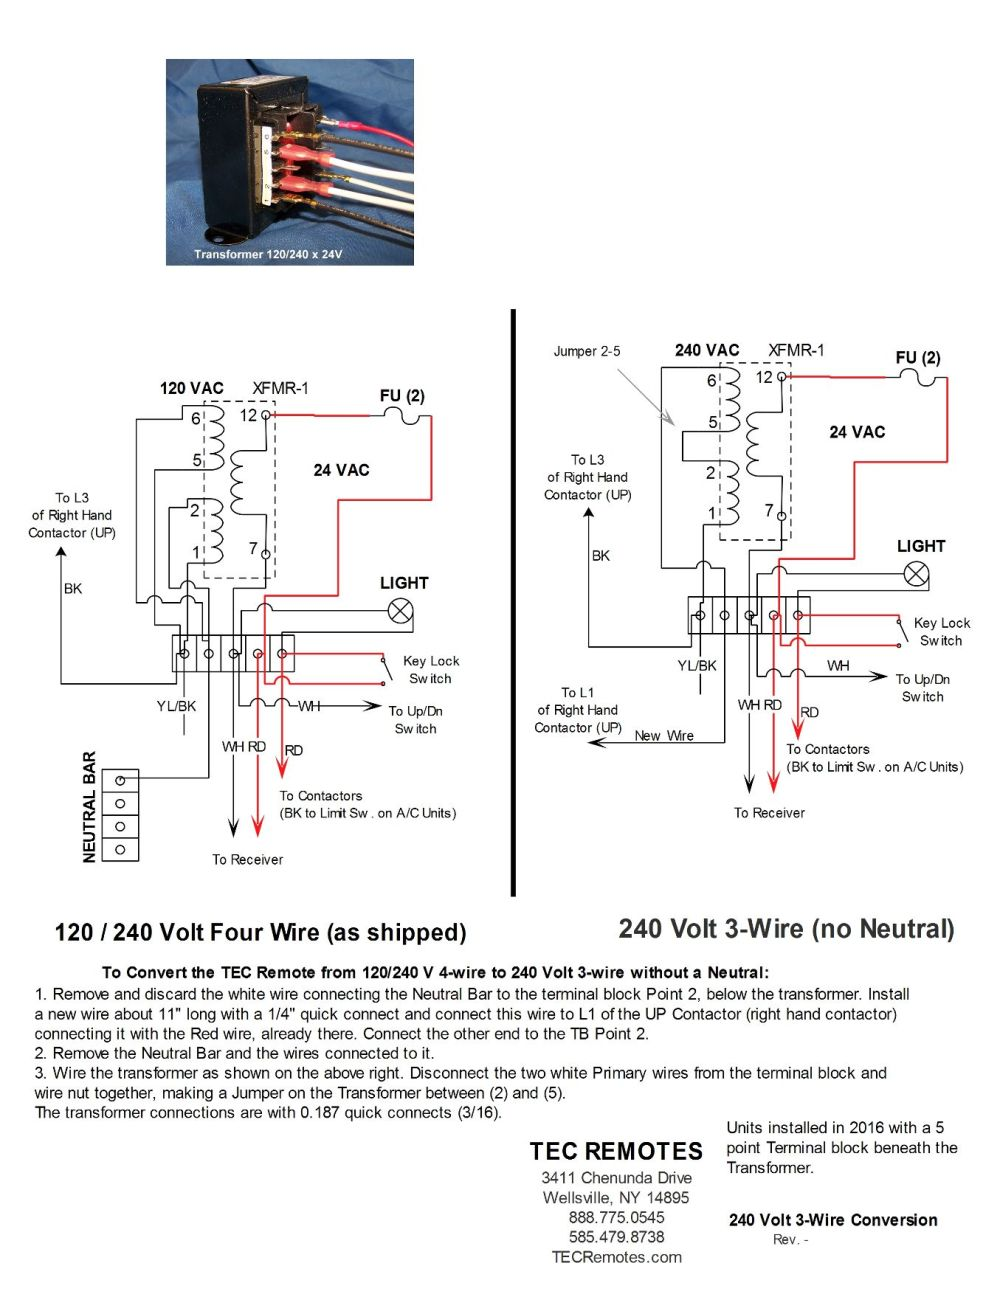 medium resolution of 240 volt 3 wire conversion